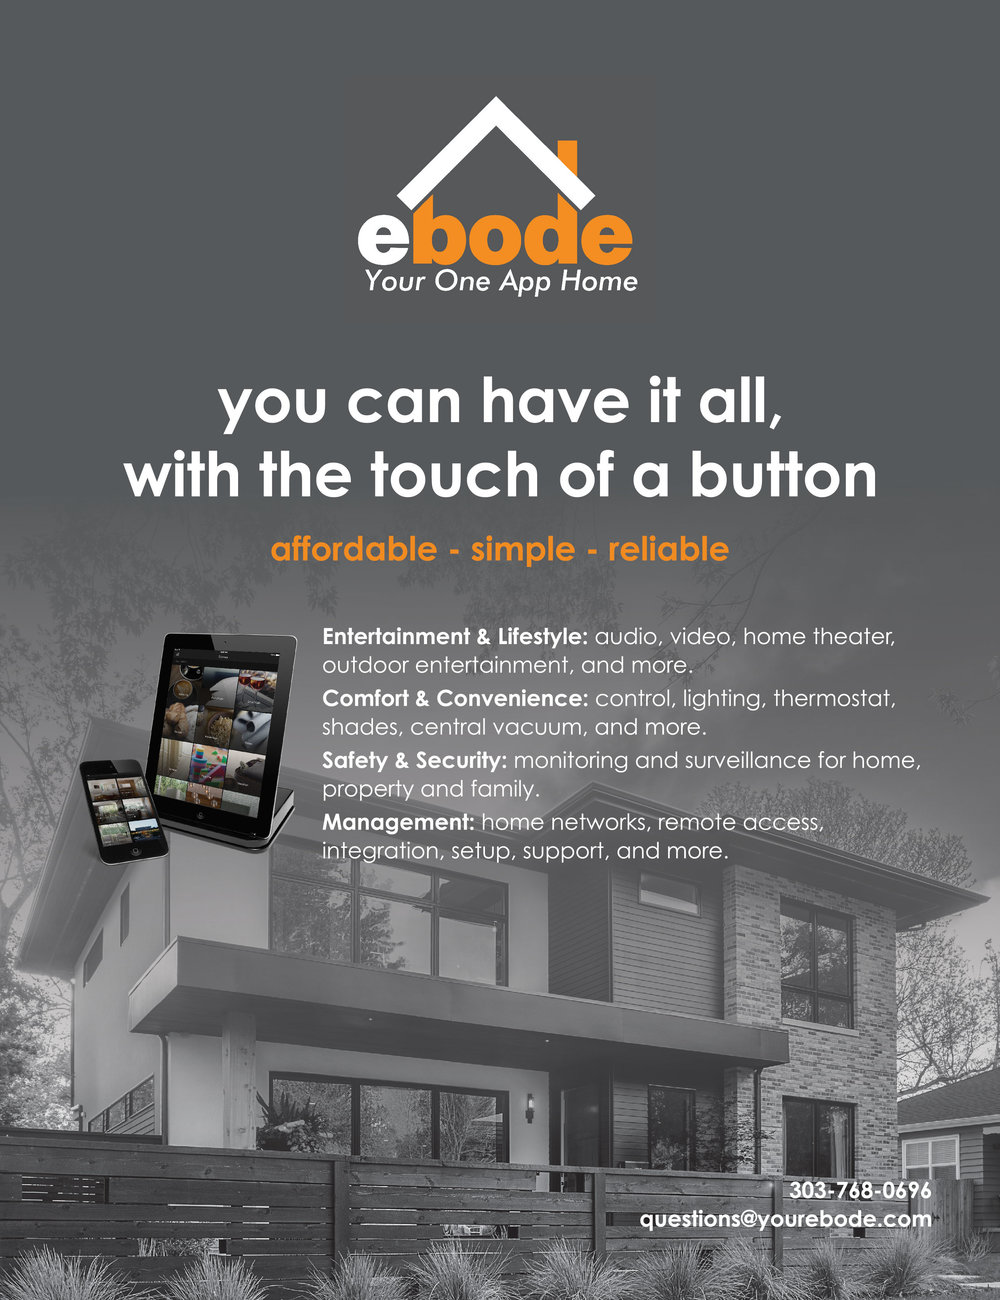 Xssentials Parade of Homes_Ebode Ad_Outlined-01.jpg